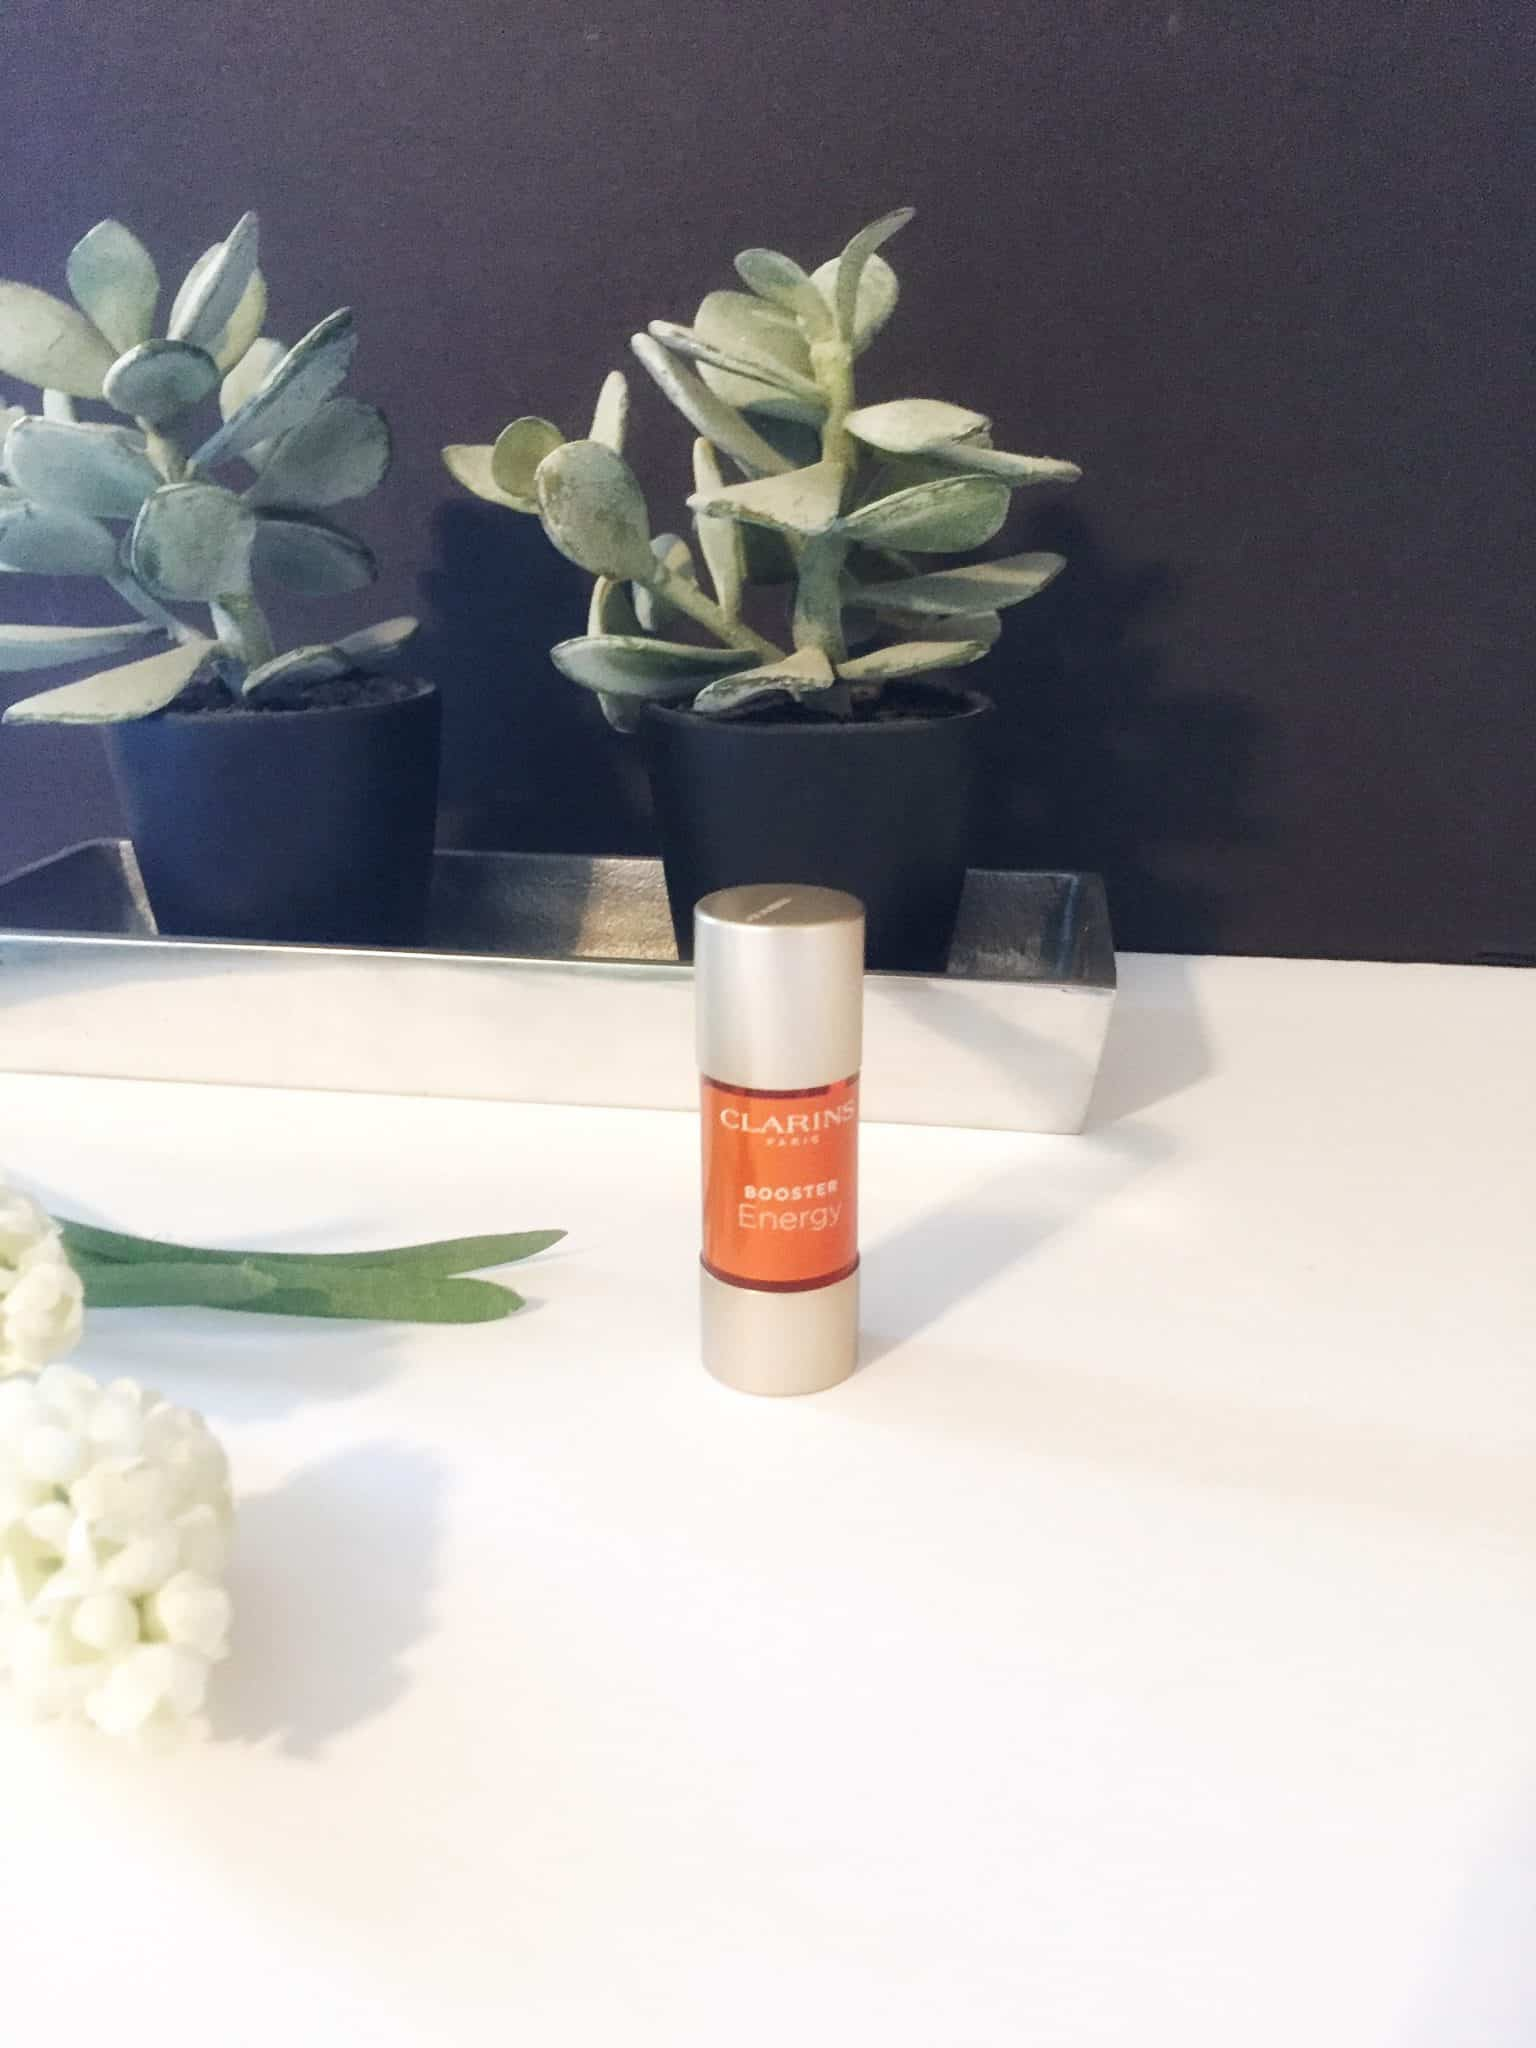 Give Me Glowing Skin – Clarins Booster Energy Review